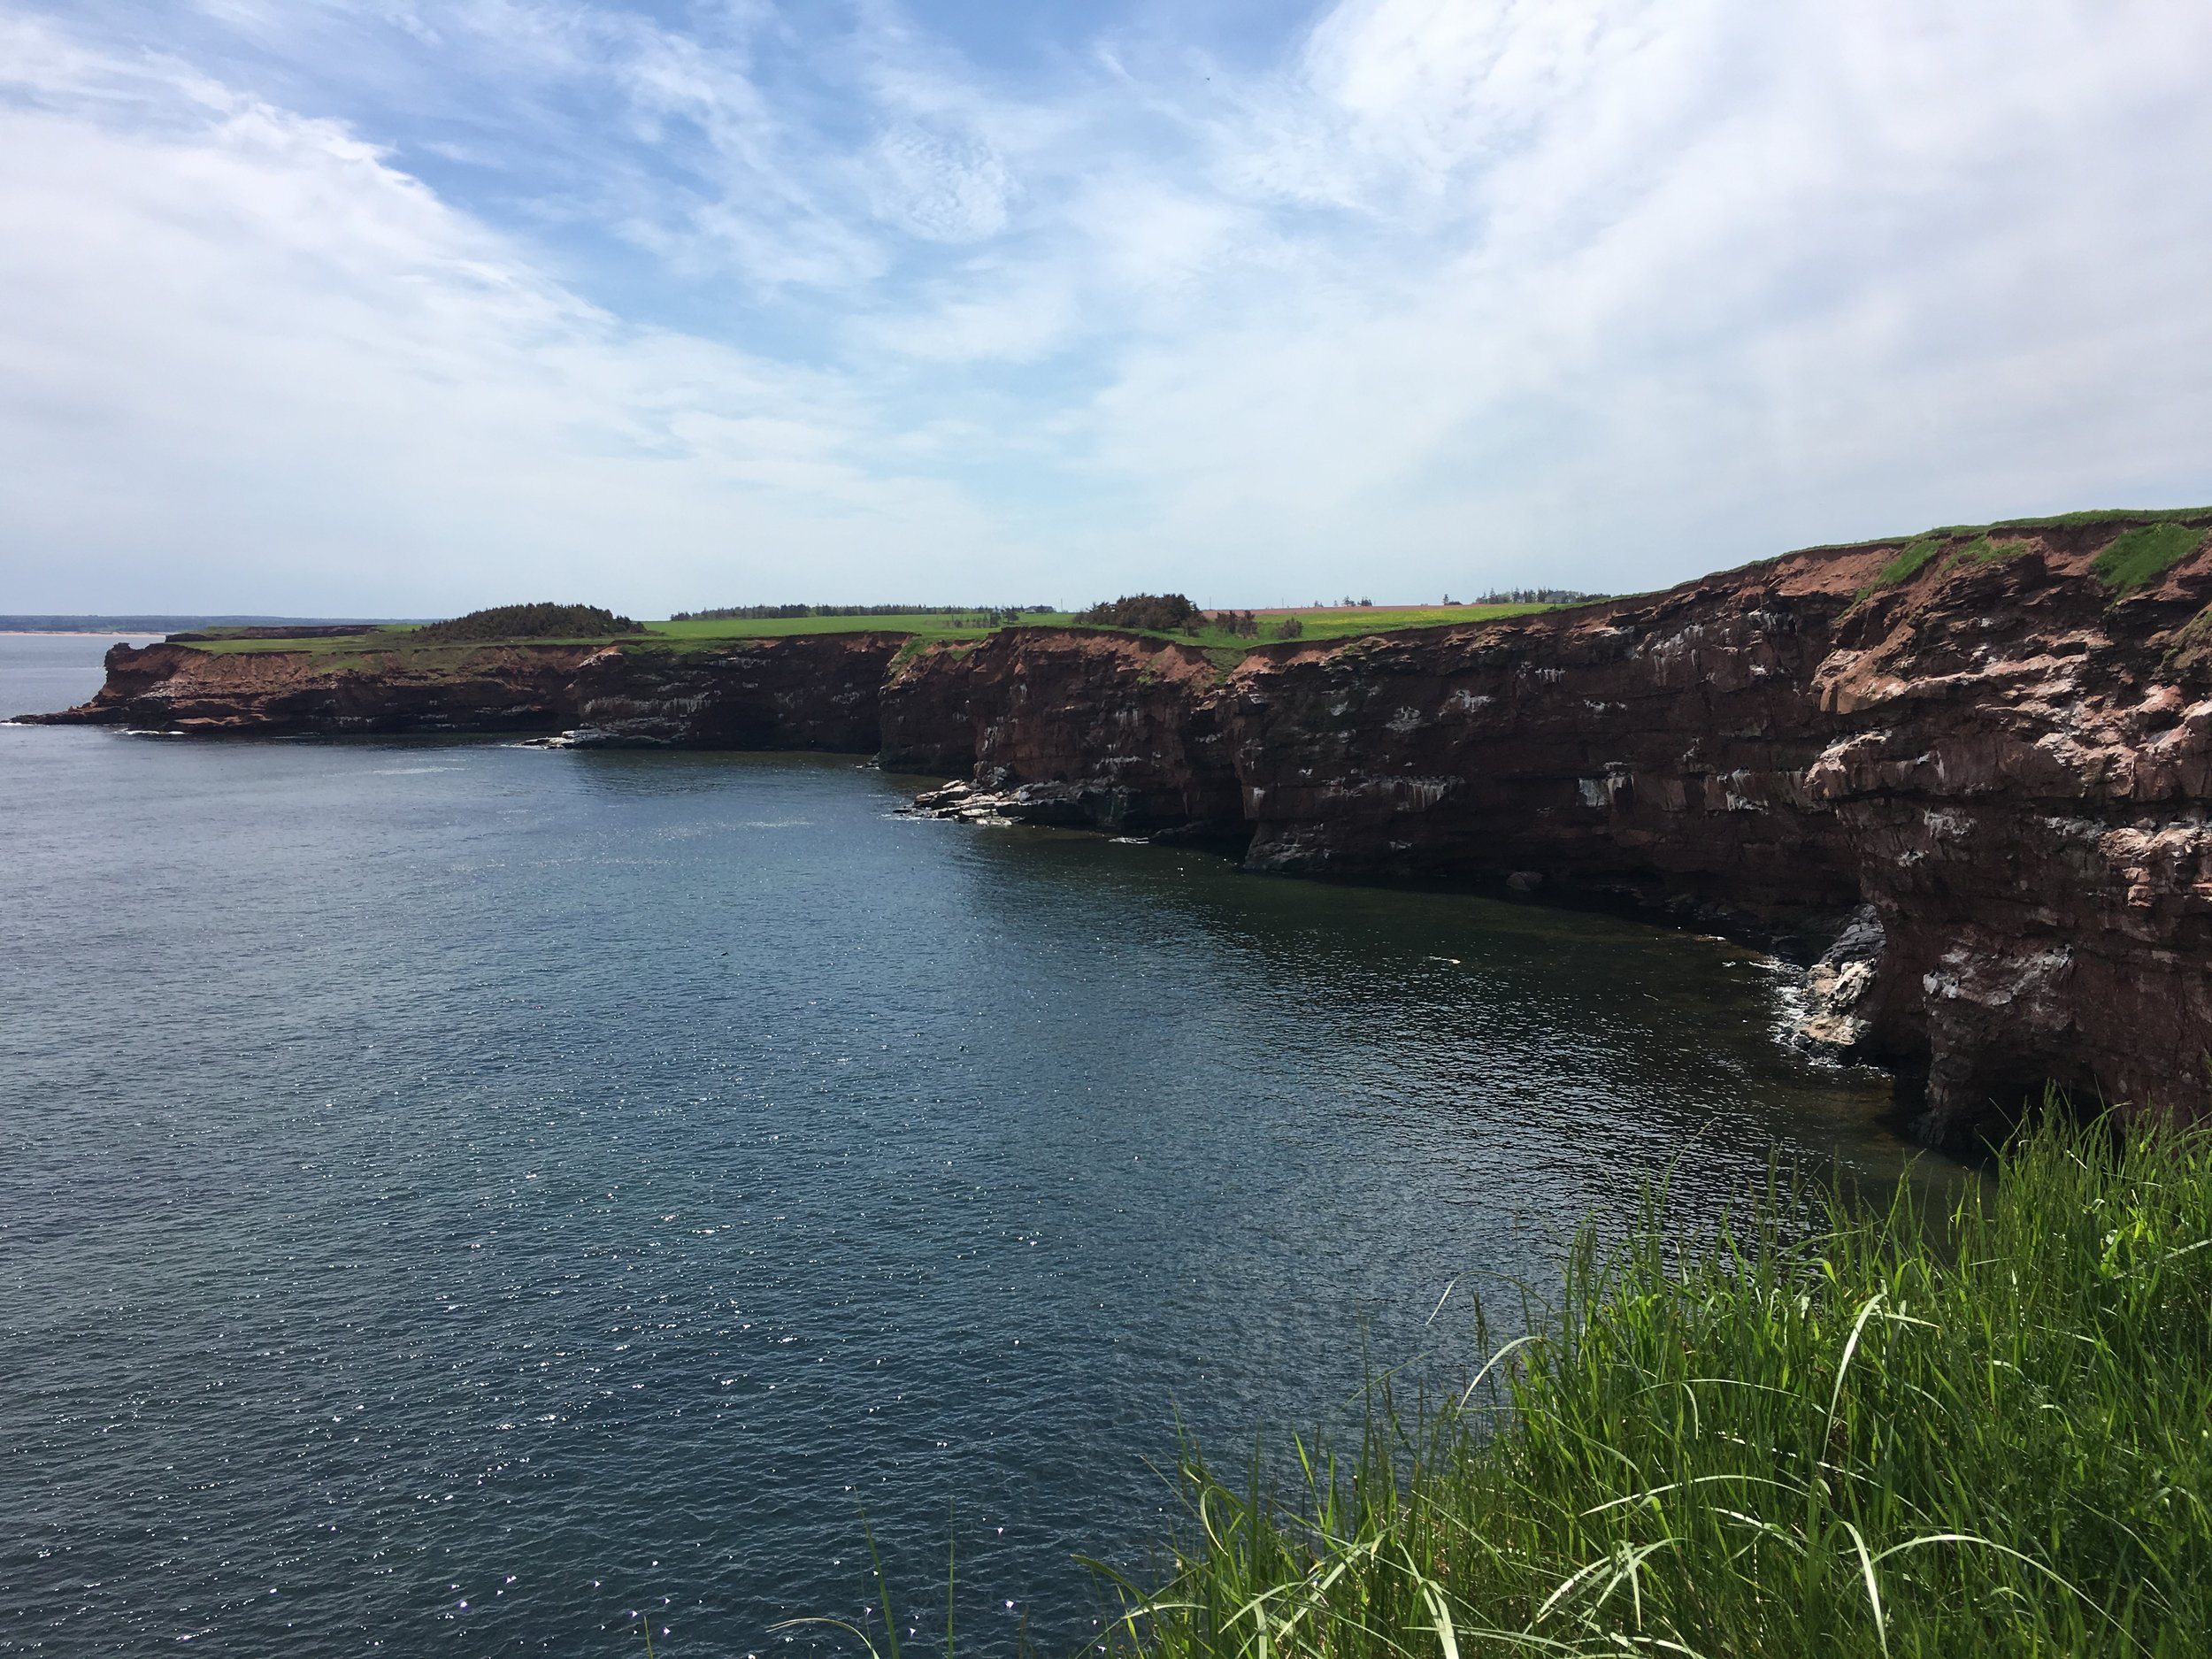 Outcrops on PEI. Red Sandstone contributes to red sand beaches